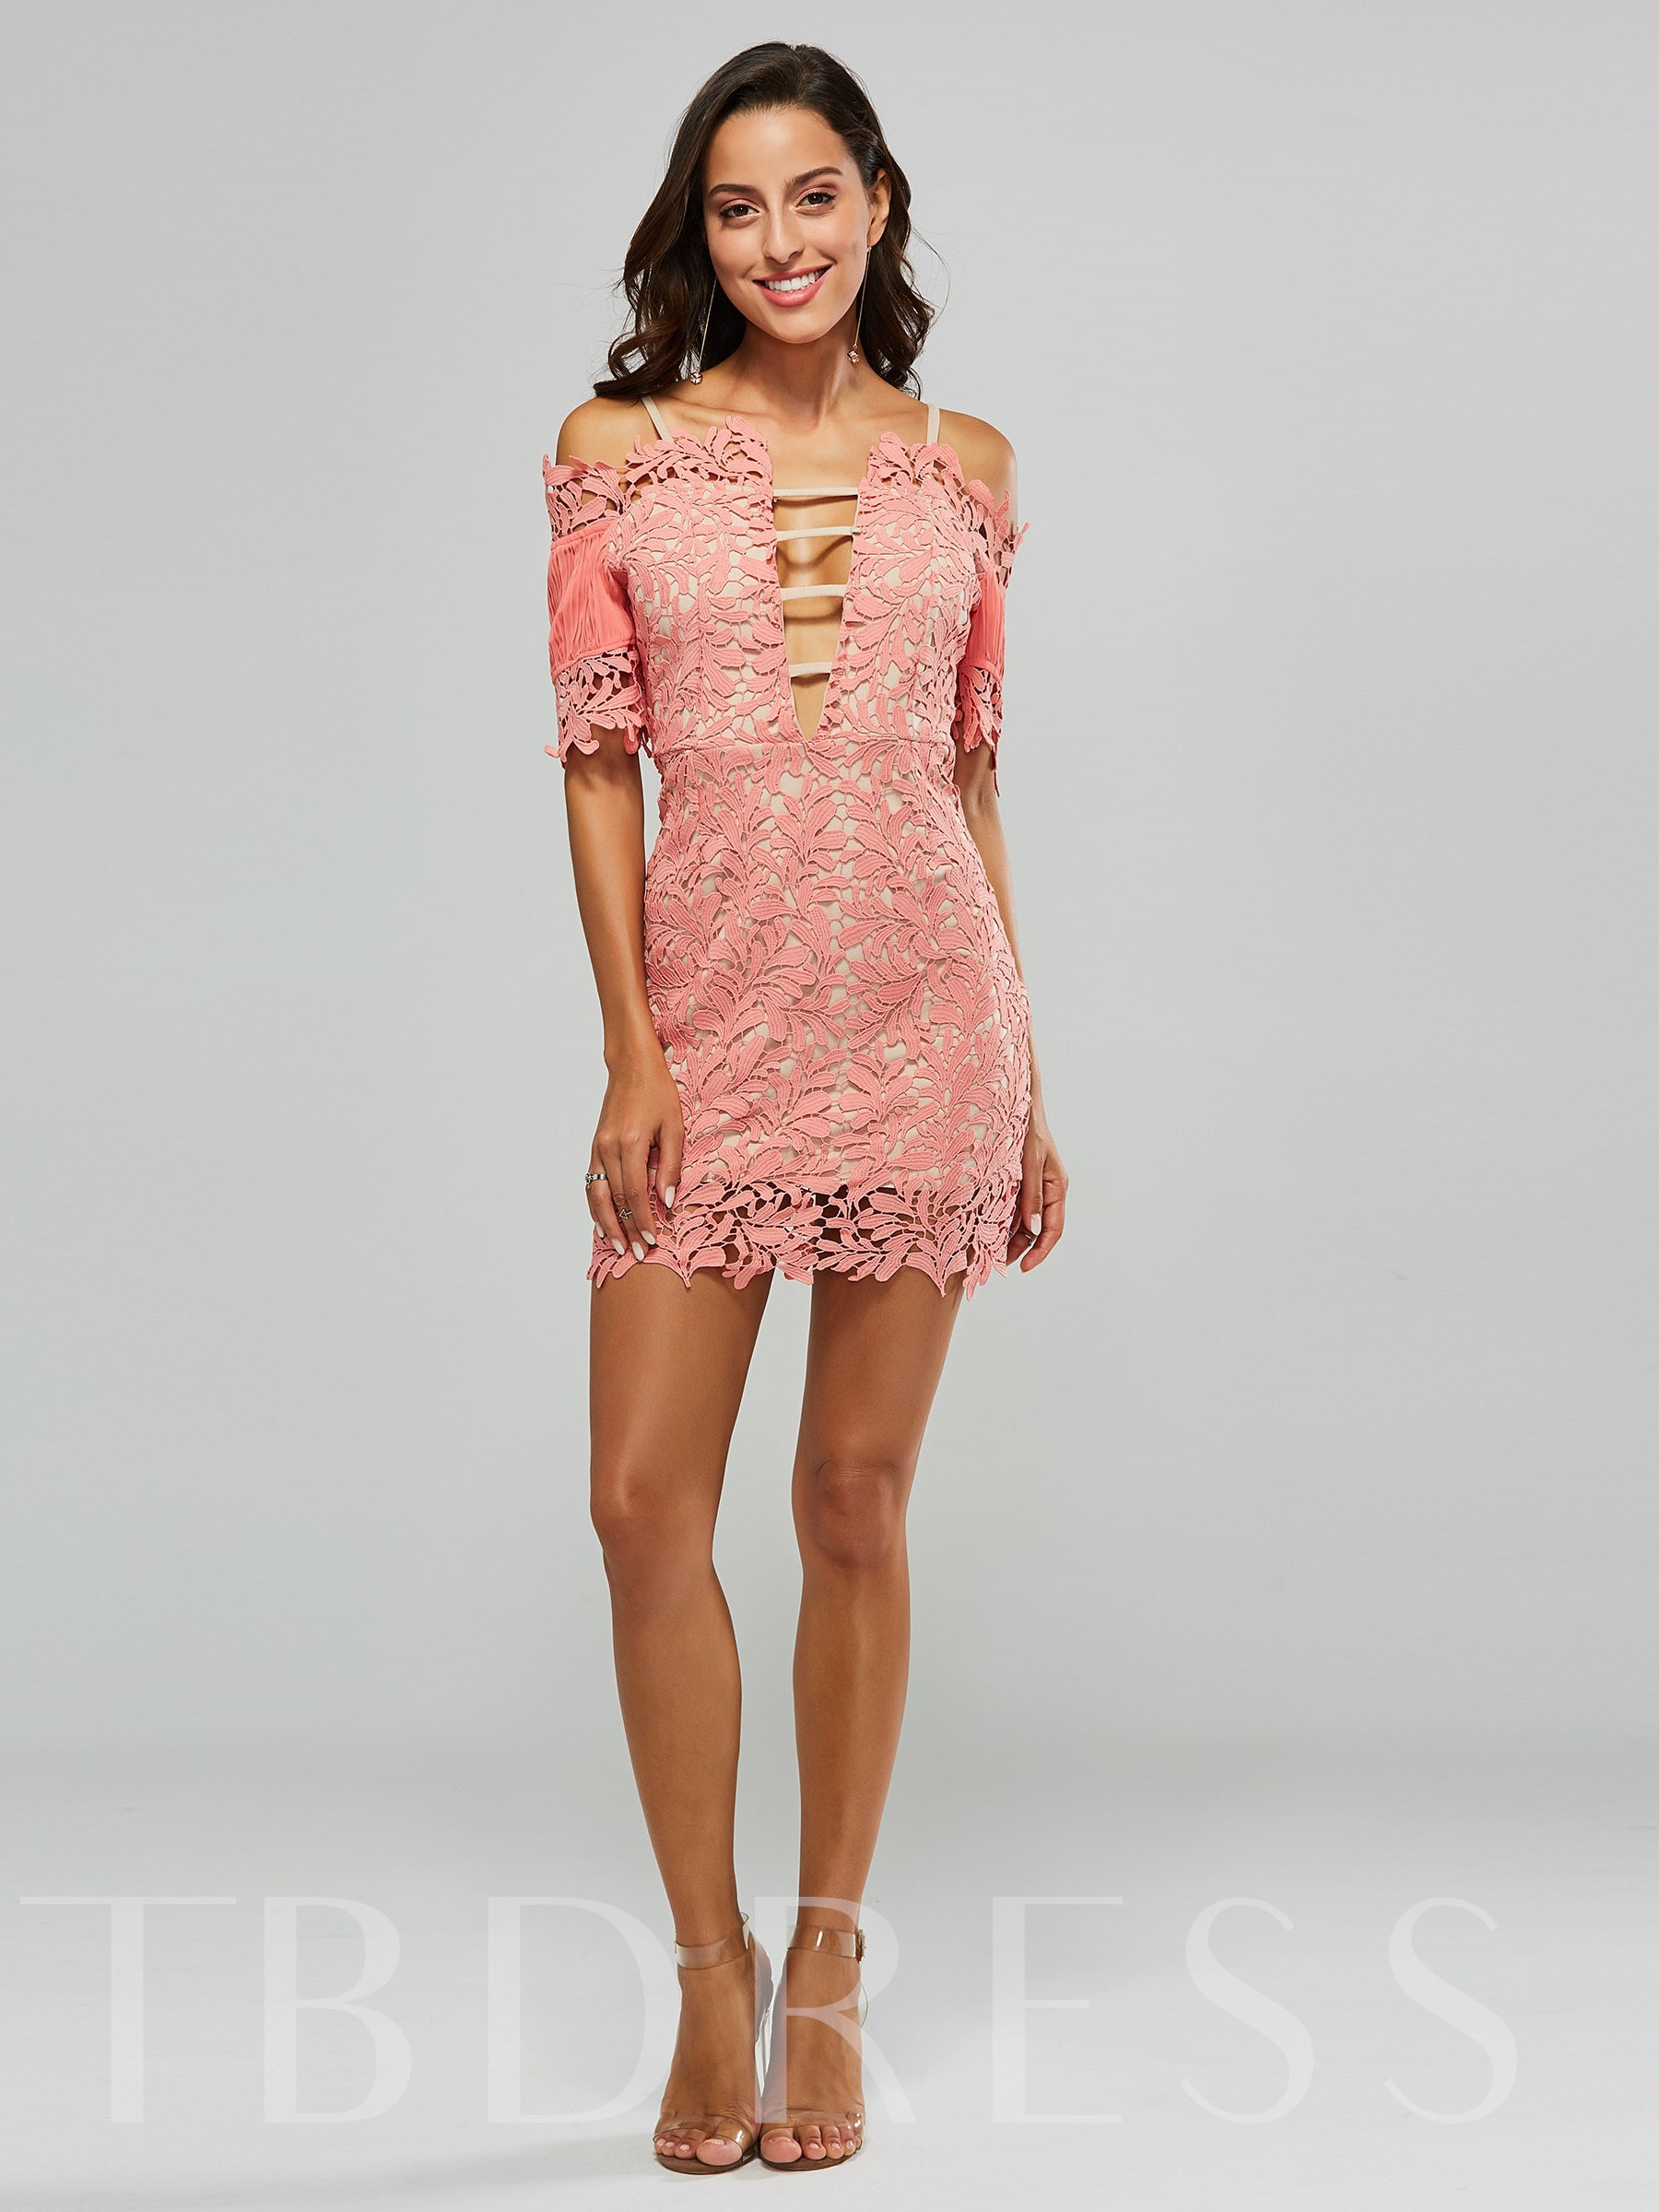 Solid Color Strappy Women's Lace Dress, Spring,Summer,Fall, 13342778